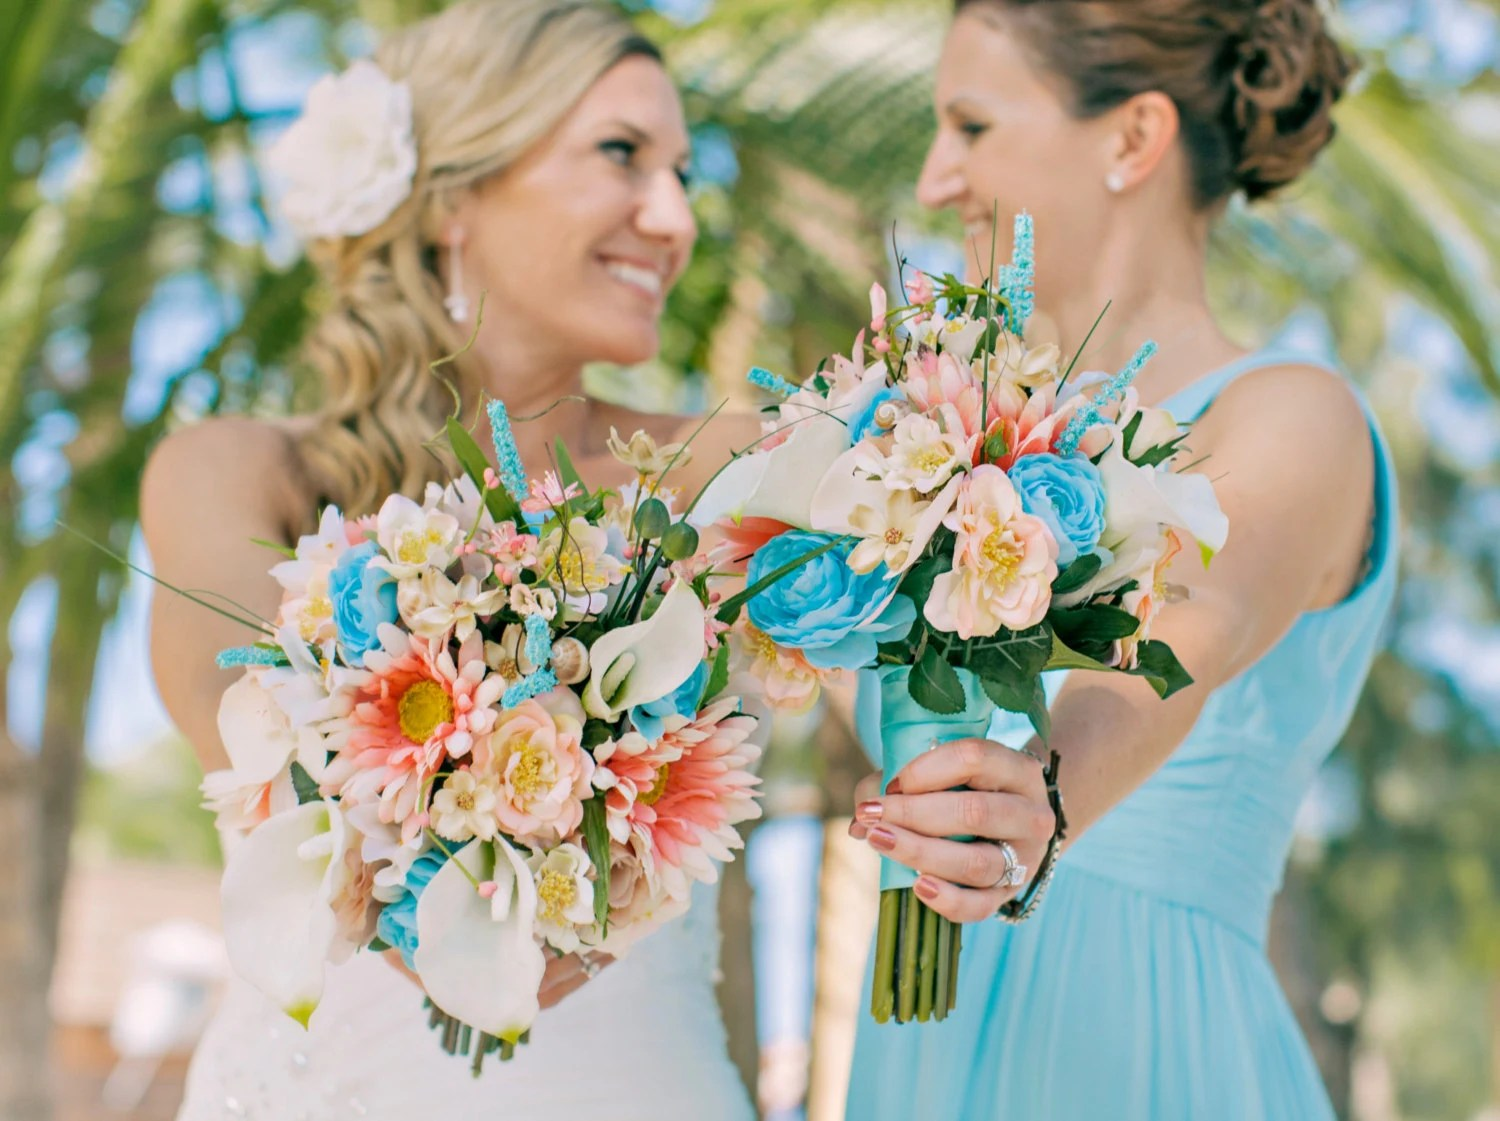 Destination Wedding Flowers Beach Bridal Bouquet Boutonniere